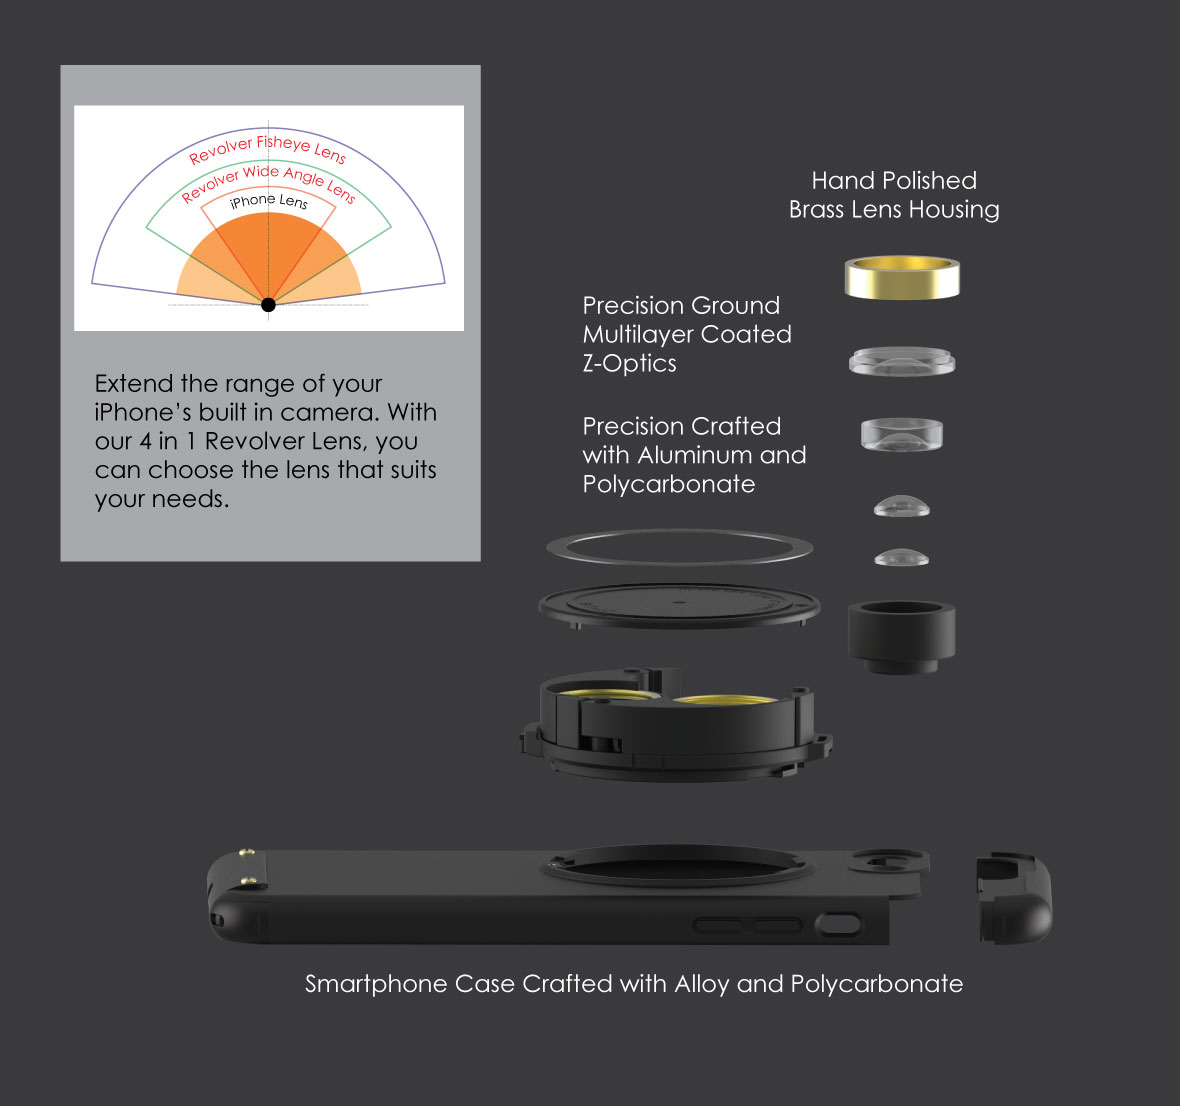 Revolver Lens Kit for iphone 8 Plus: Extend the range of your iPhone's built in camera. With our 4 in 1 Revolver Lens, you can choose the lens that suits your needs.